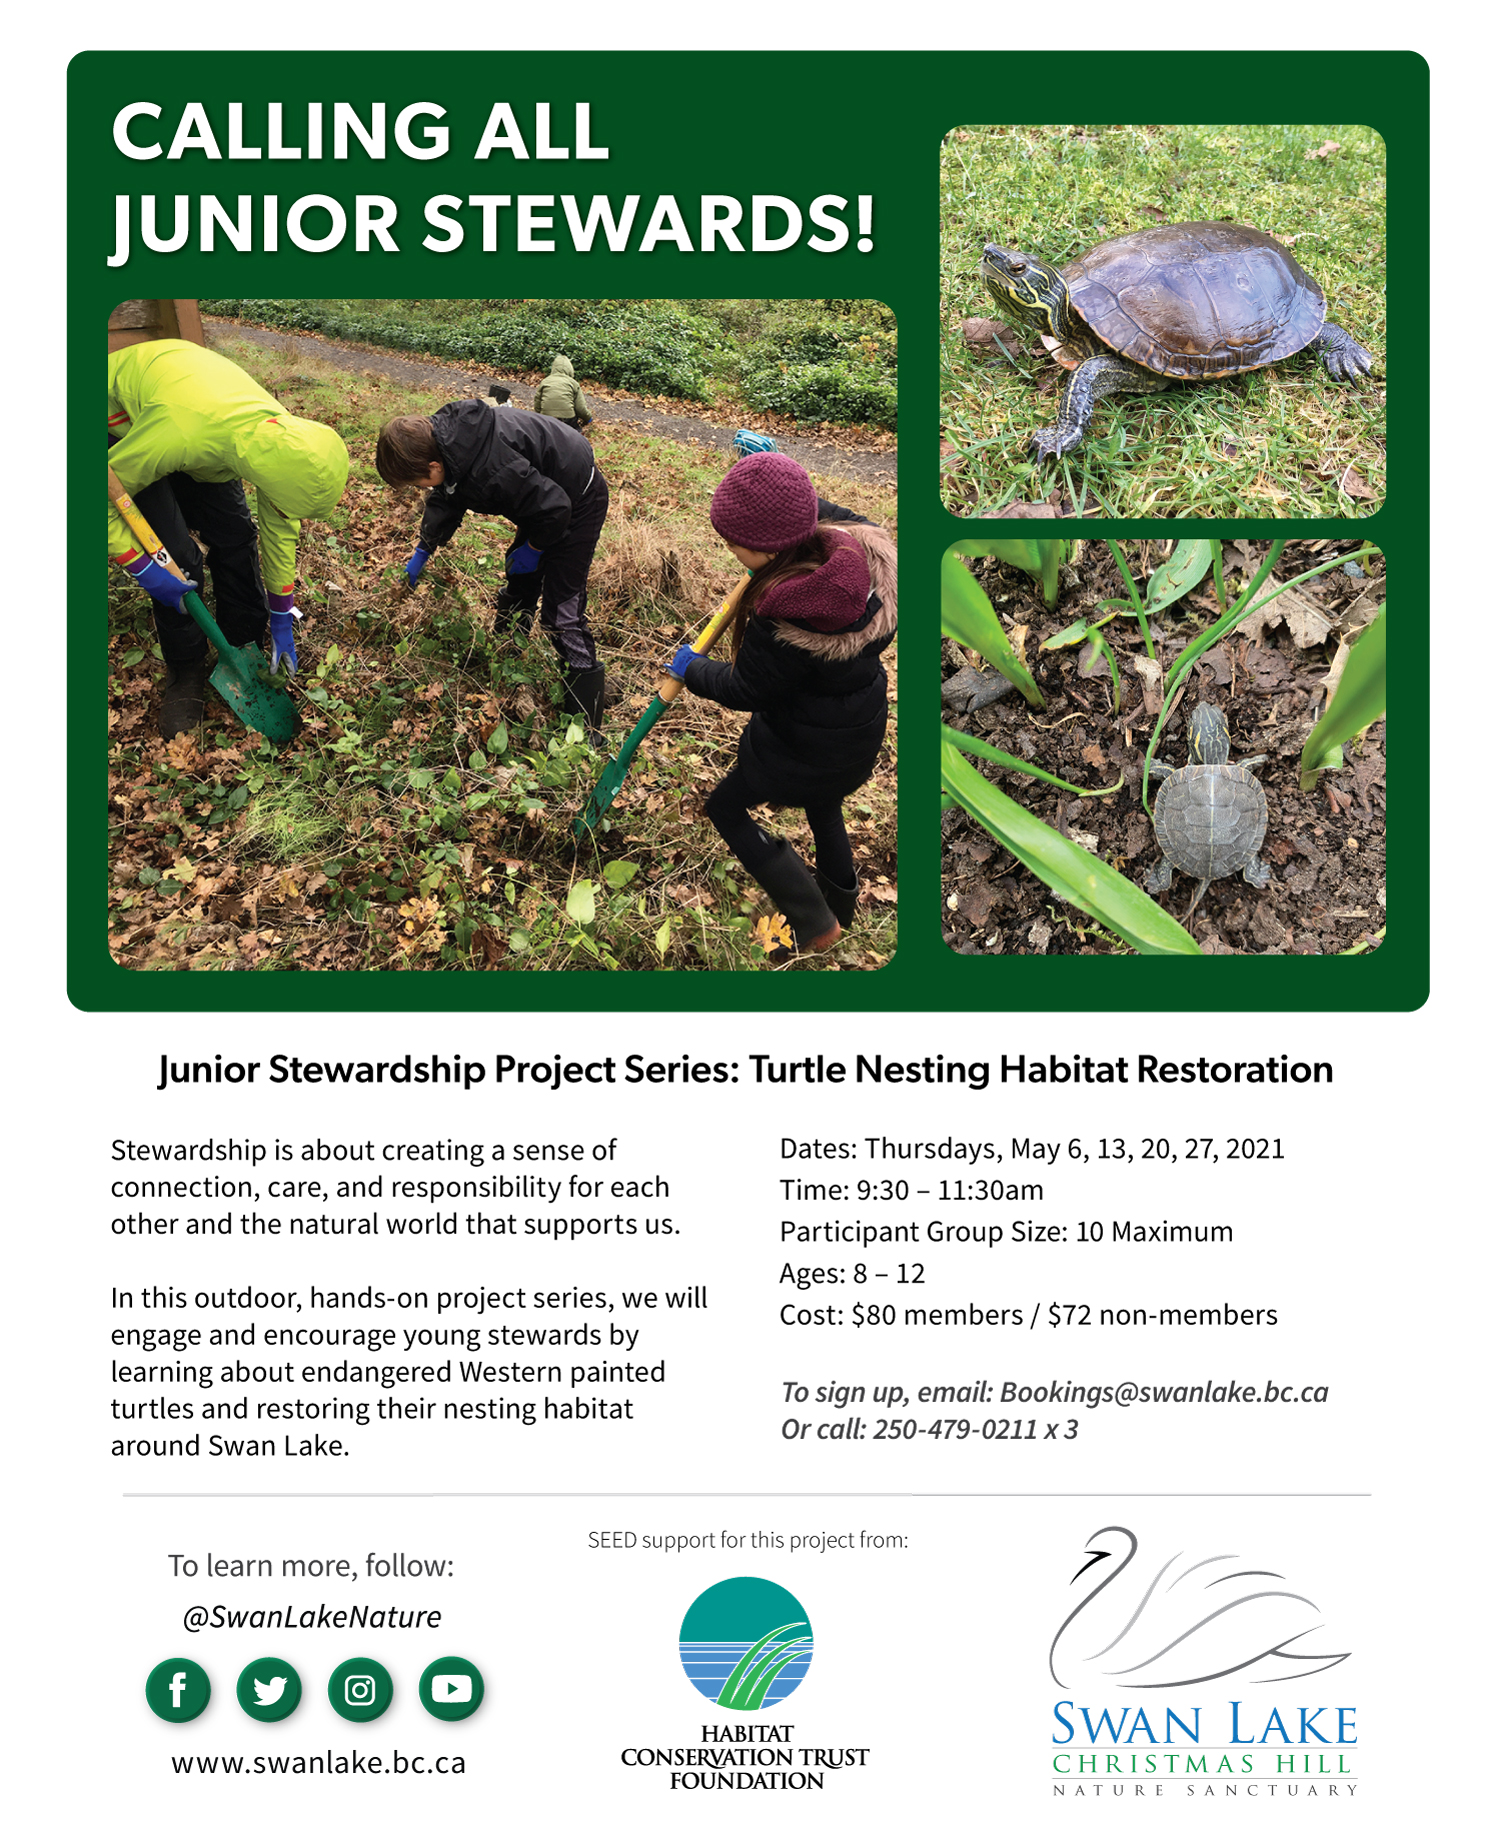 Flyer for Junior Stewardship Series showing children working outside and Western Painted Turtles